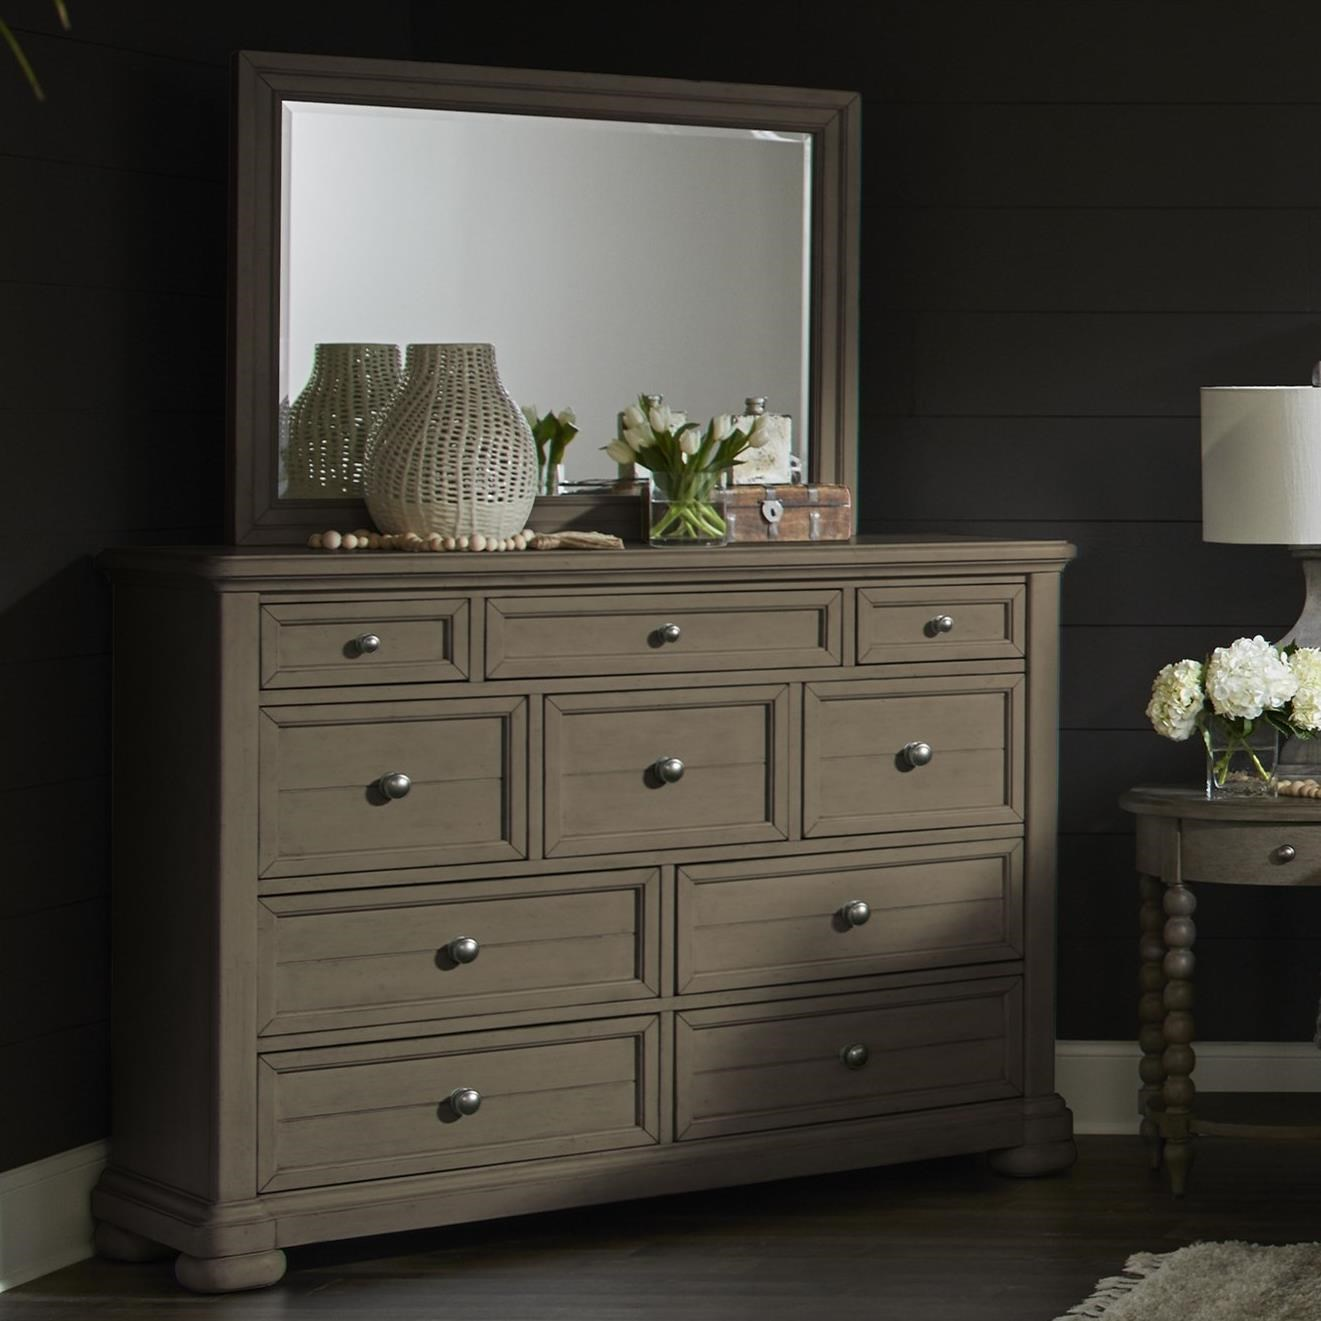 Nashville Dresser + Mirror Set by Trisha Yearwood Home Collection by Klaussner at Johnny Janosik